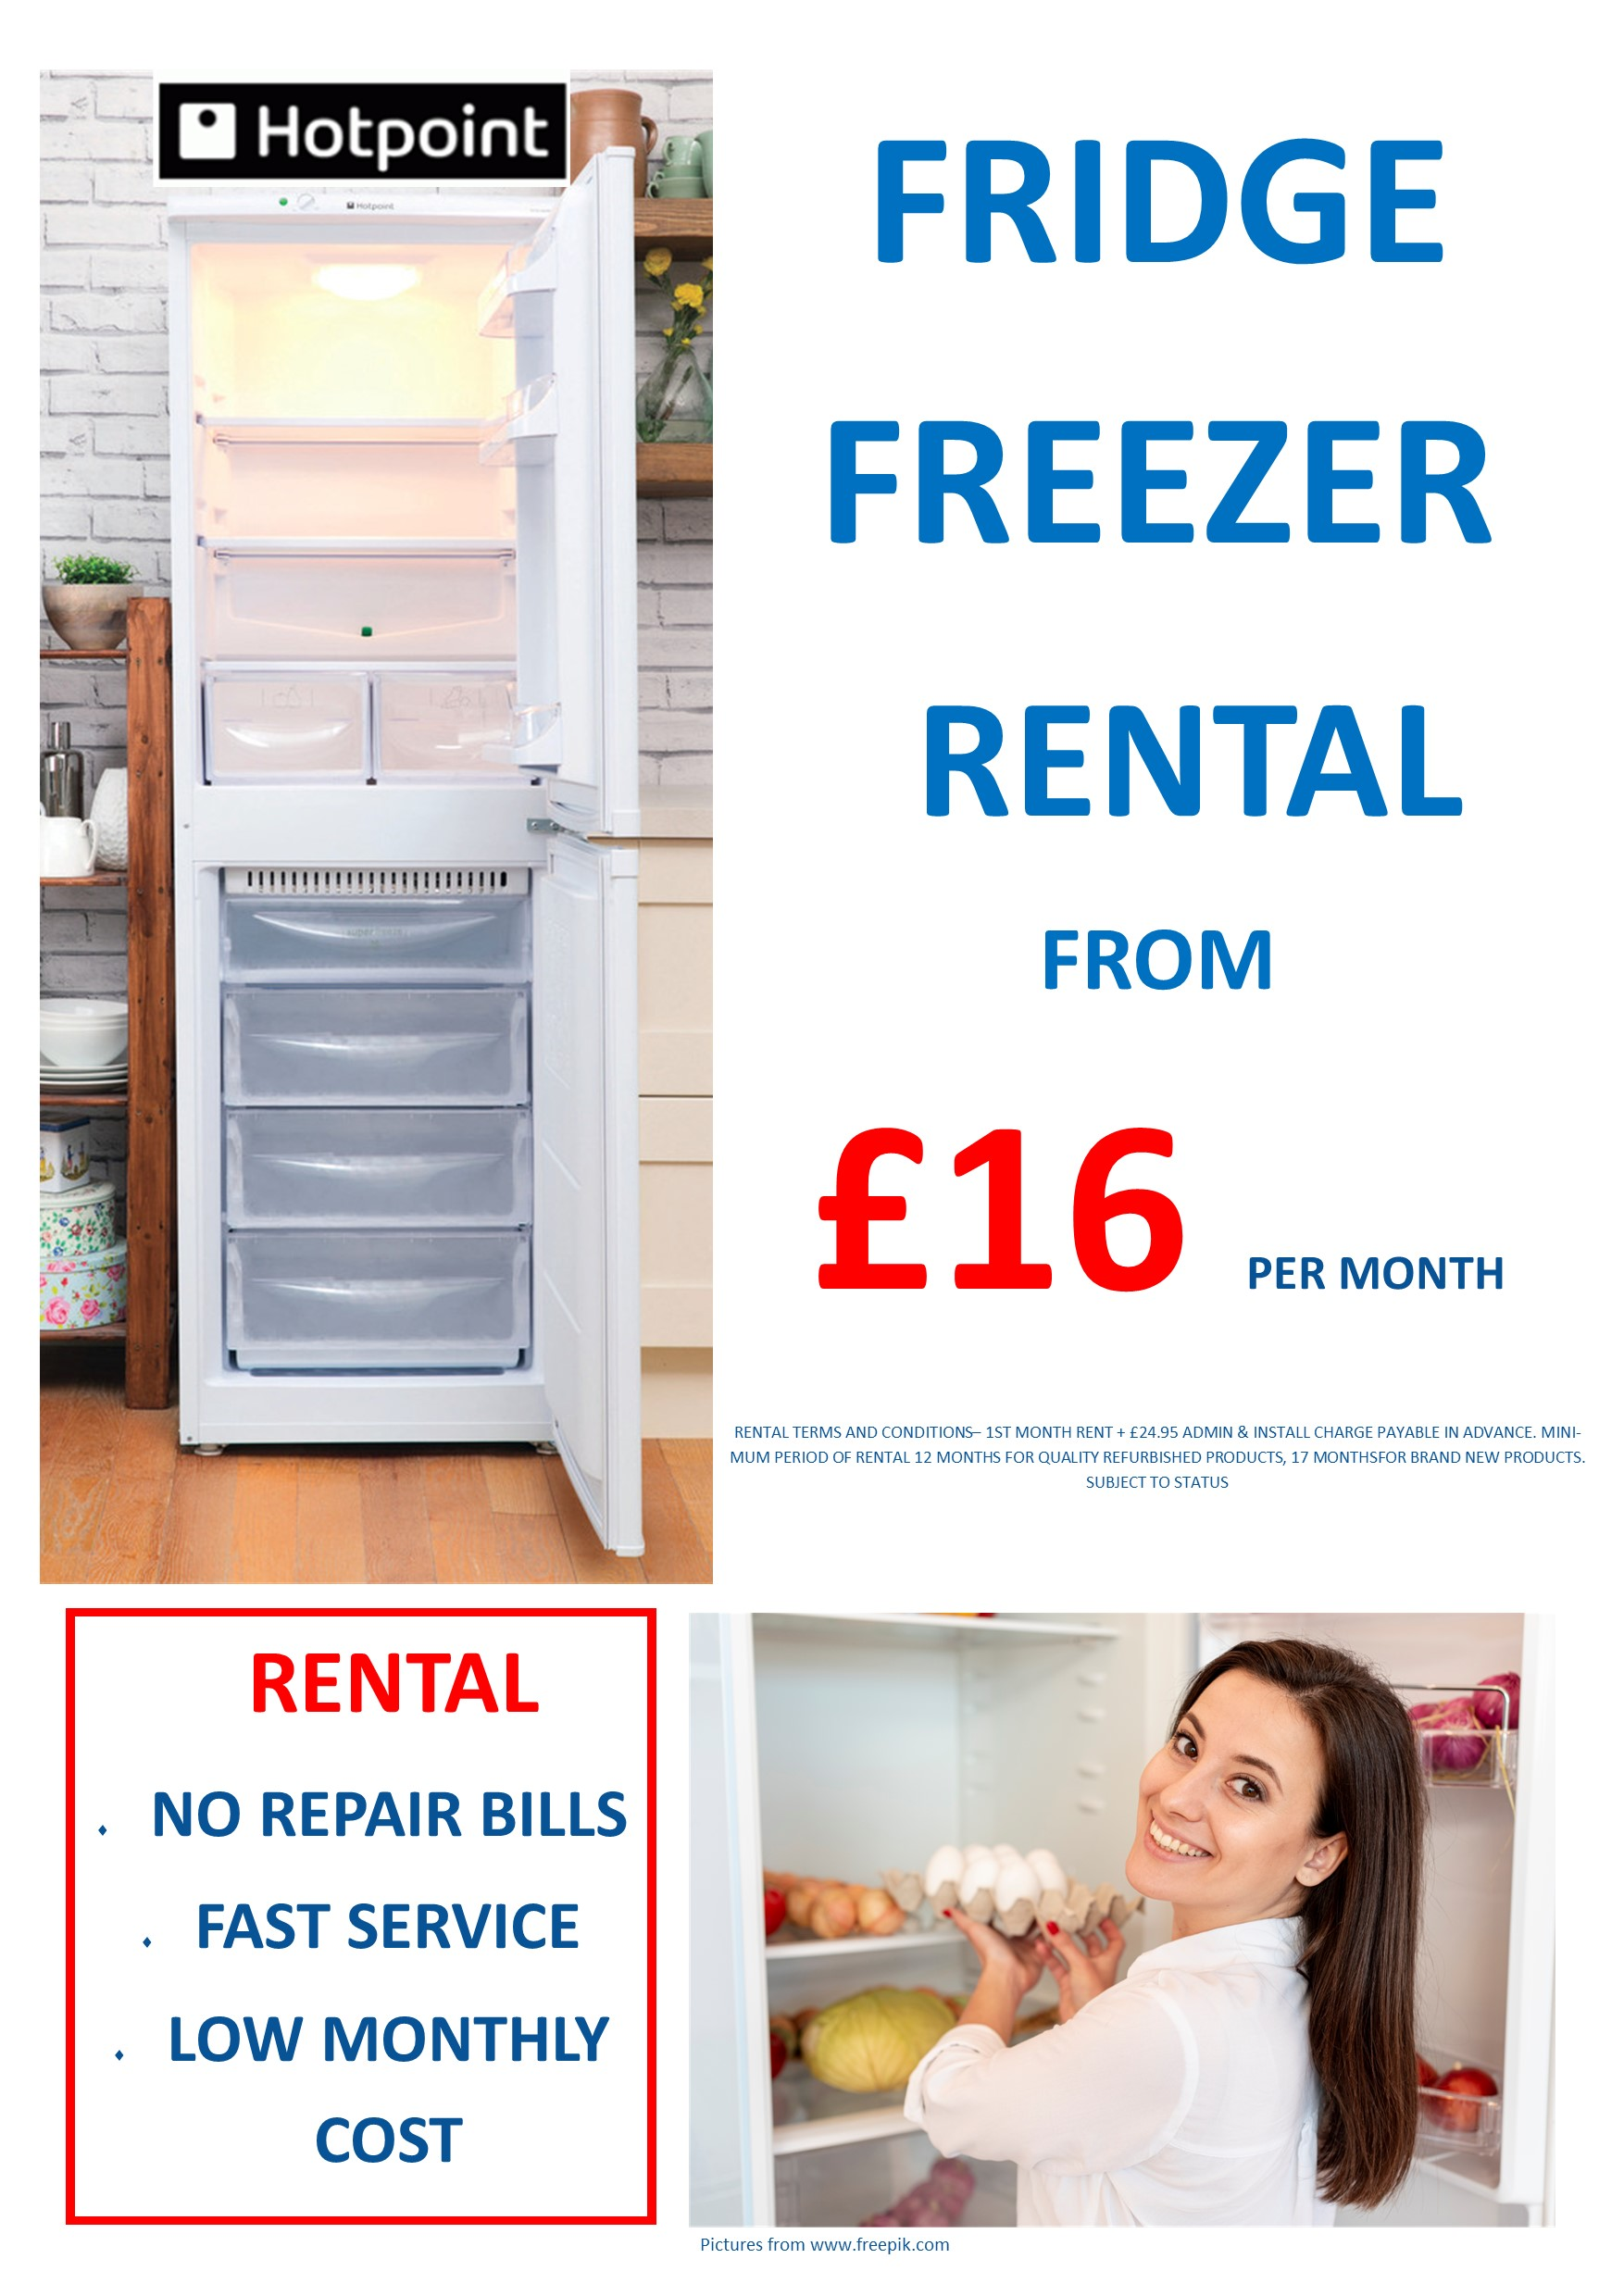 RENT this Hotpoint 55cm wide Fridge Freezer - NO REPAIR BILLS, LOW PAYMENTS